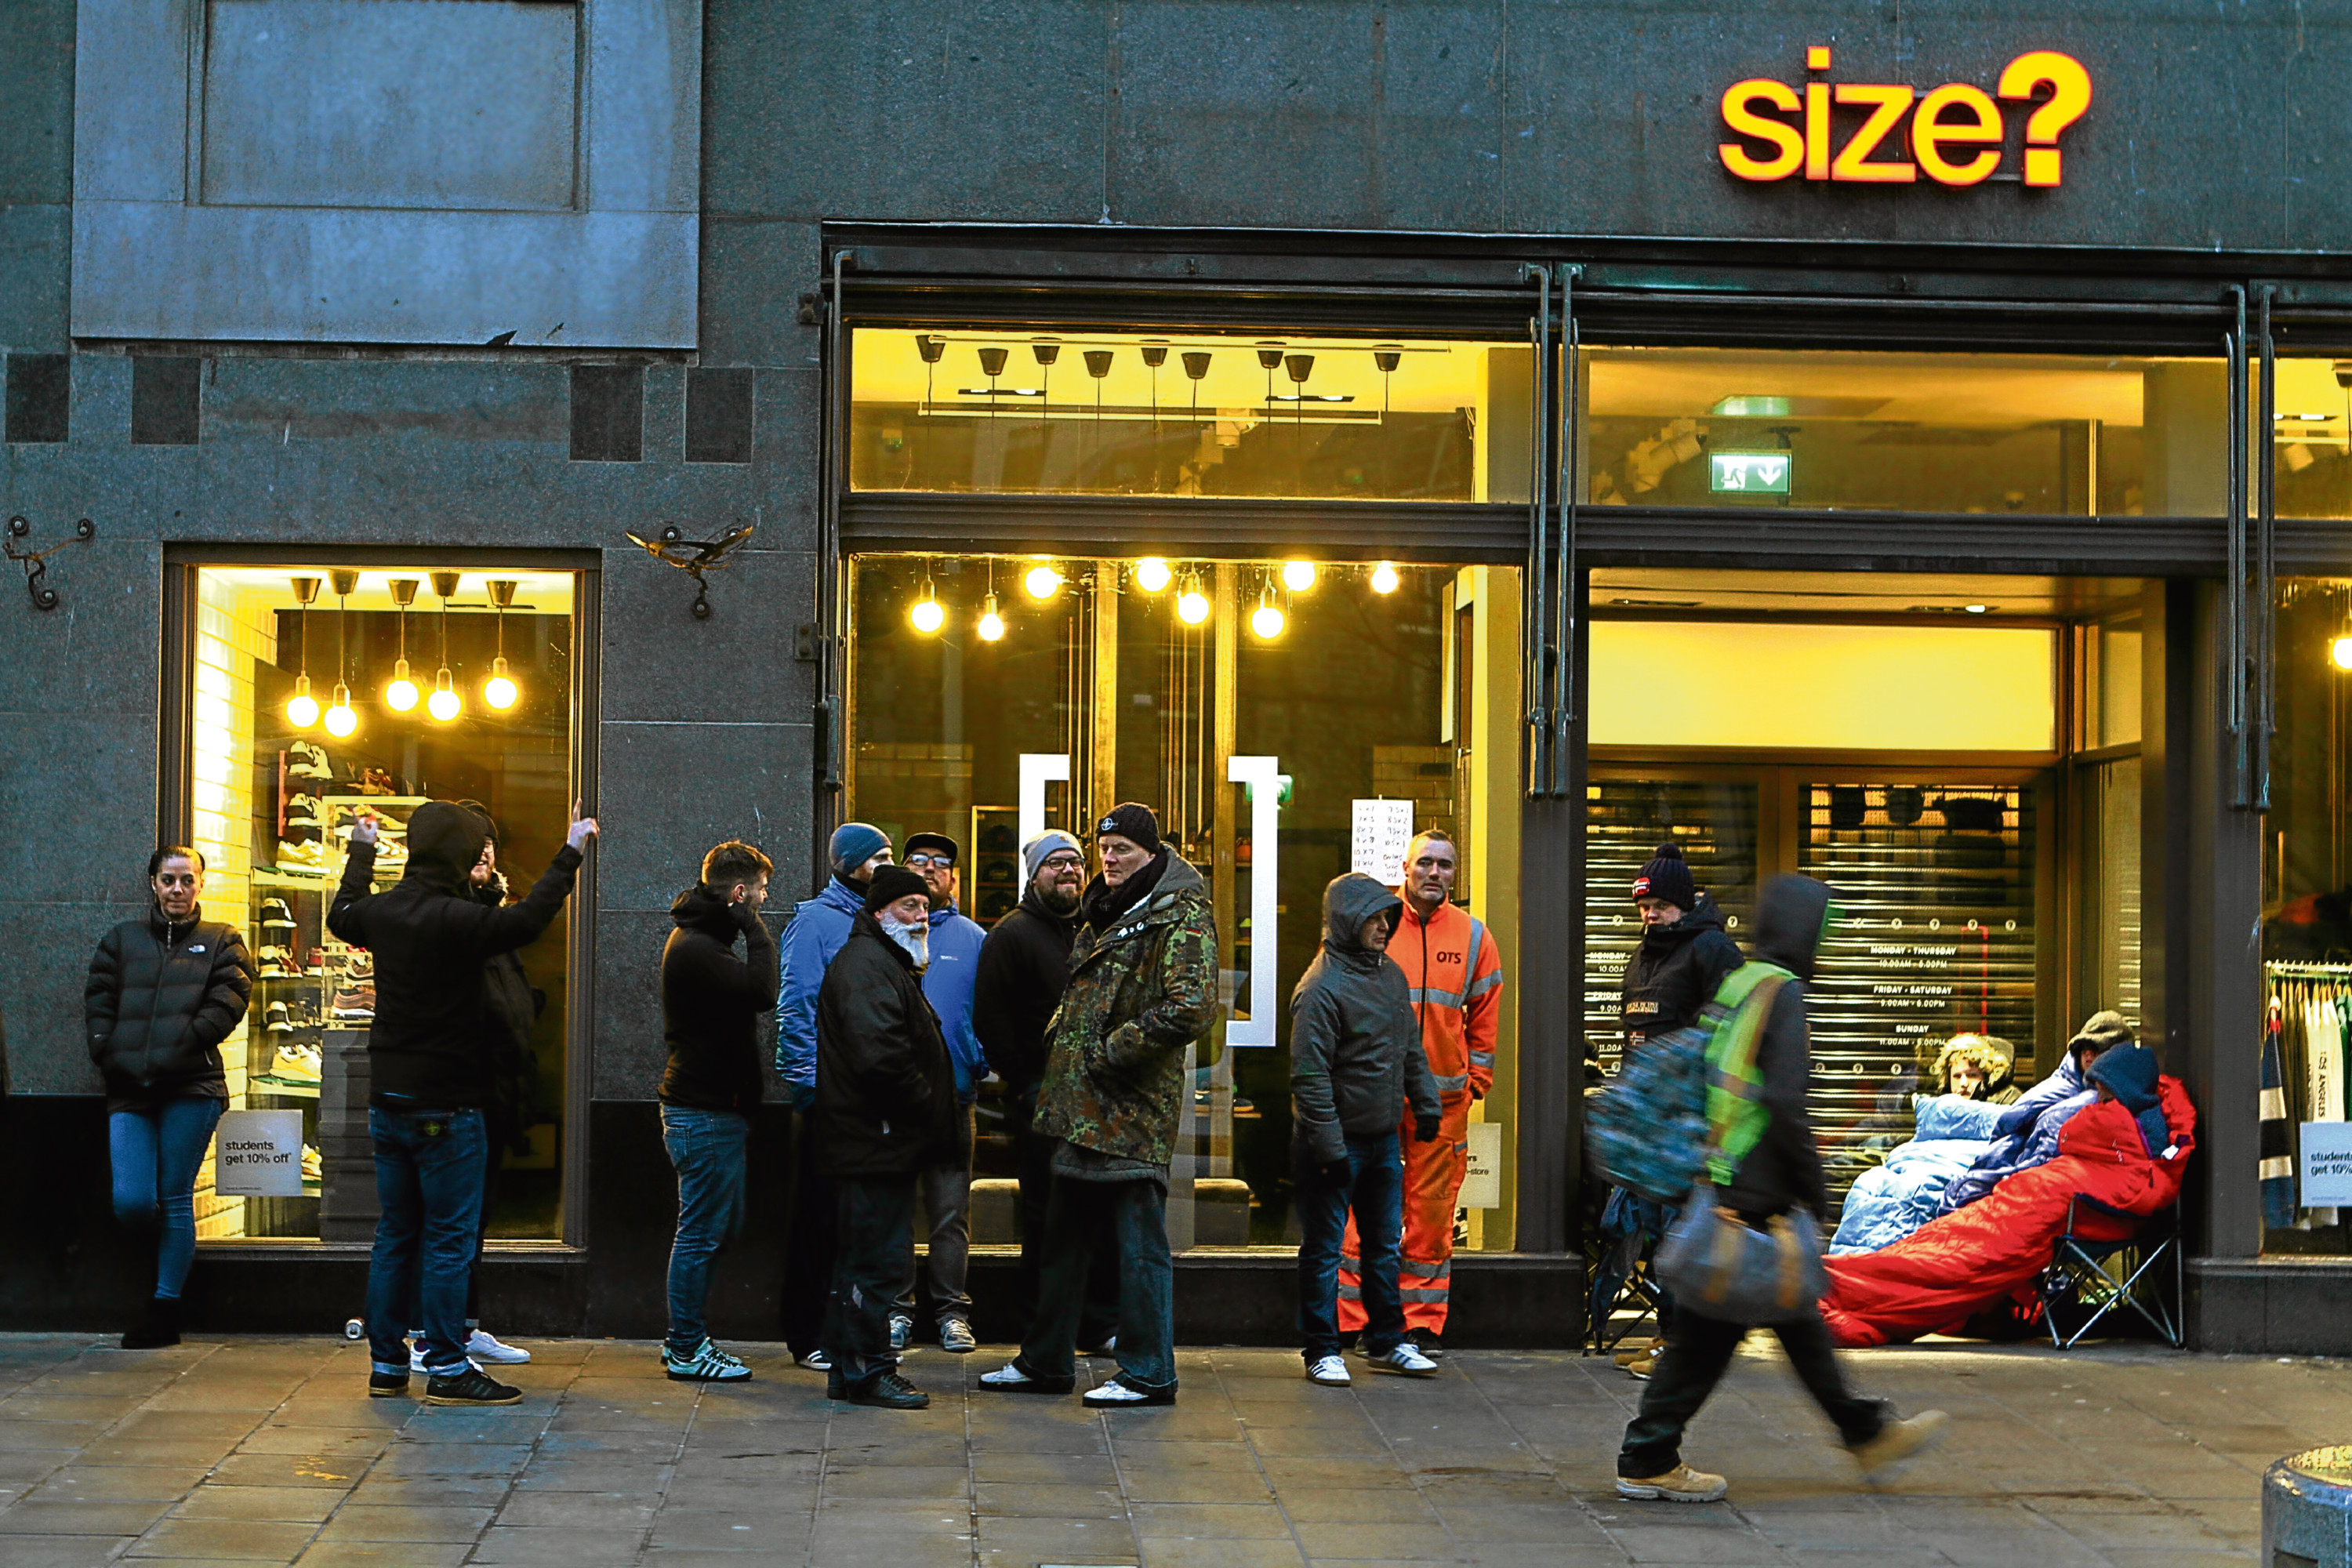 Eager Adidas fans queue outside Size? in Dundee High Street